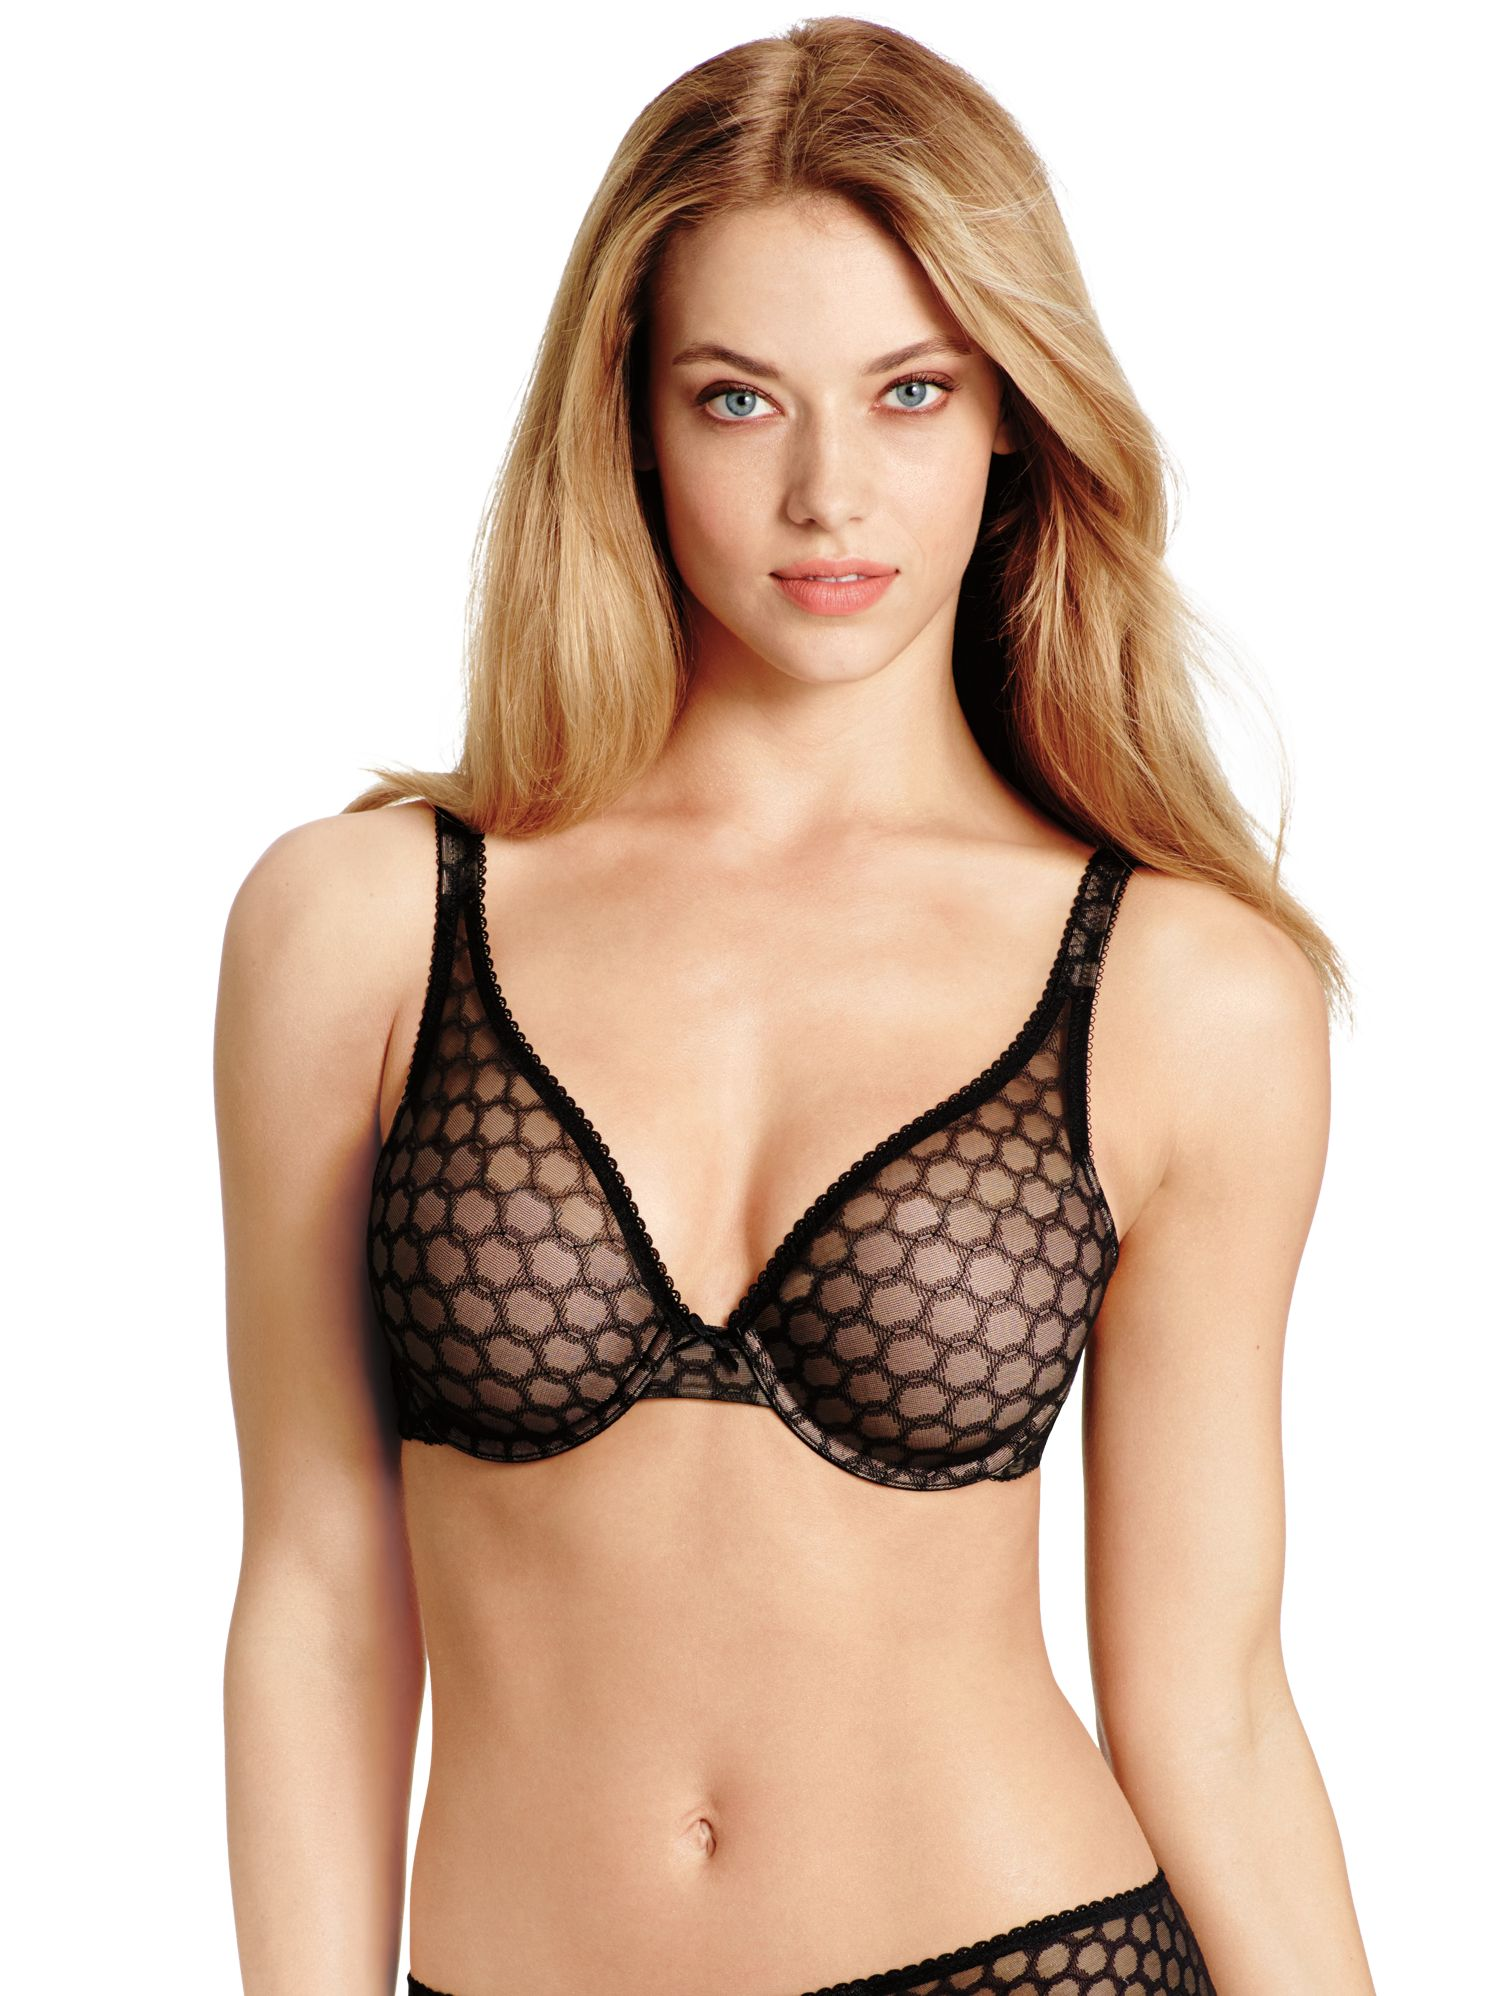 Wacoal Contour Super Chic T-Shirt Bra, Black